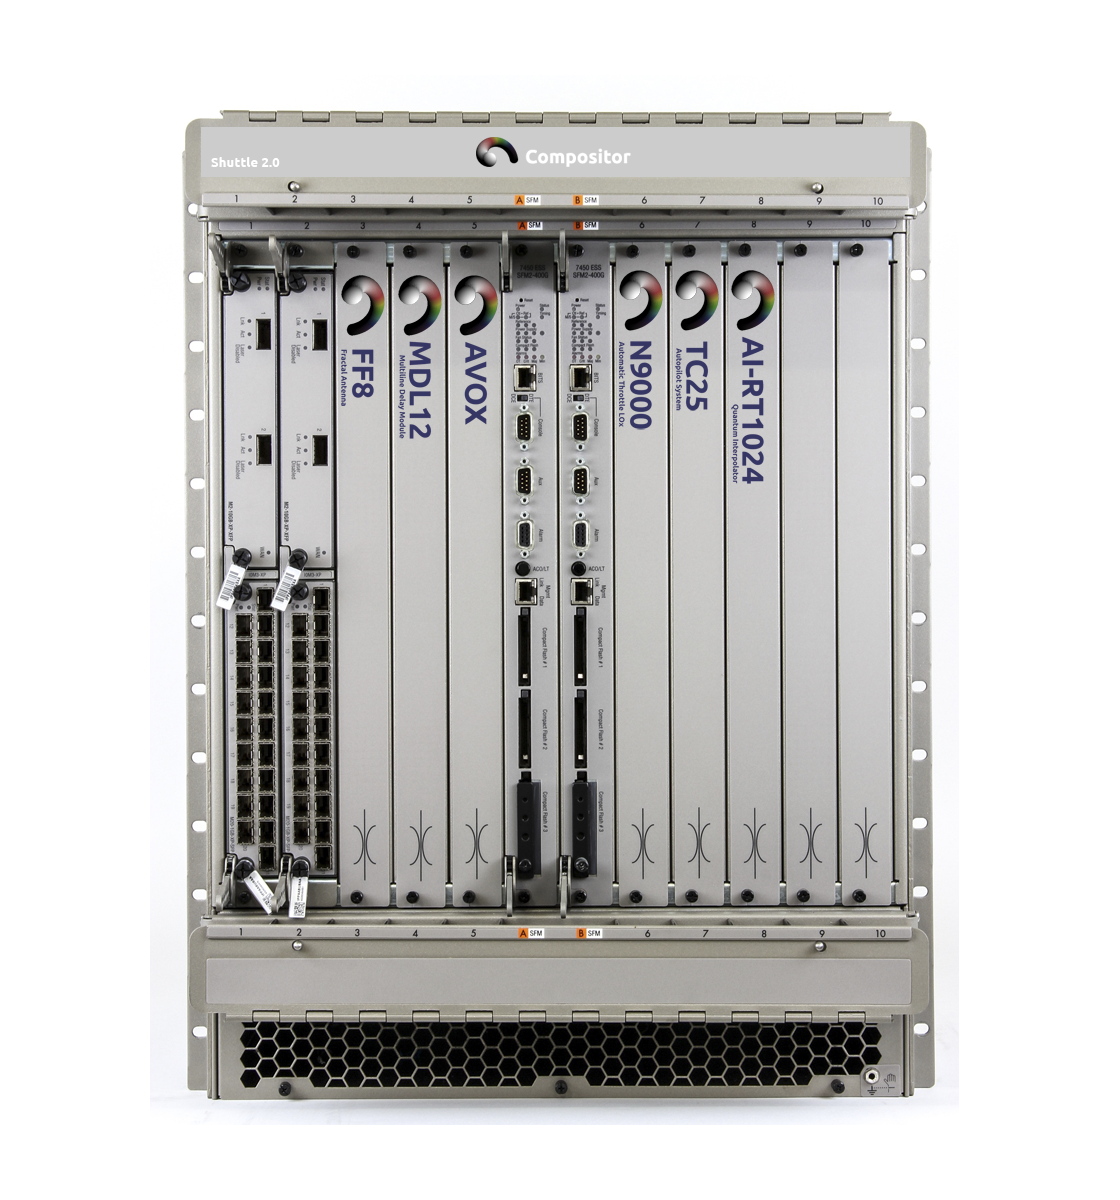 Compositor Software main rack 1120x1200